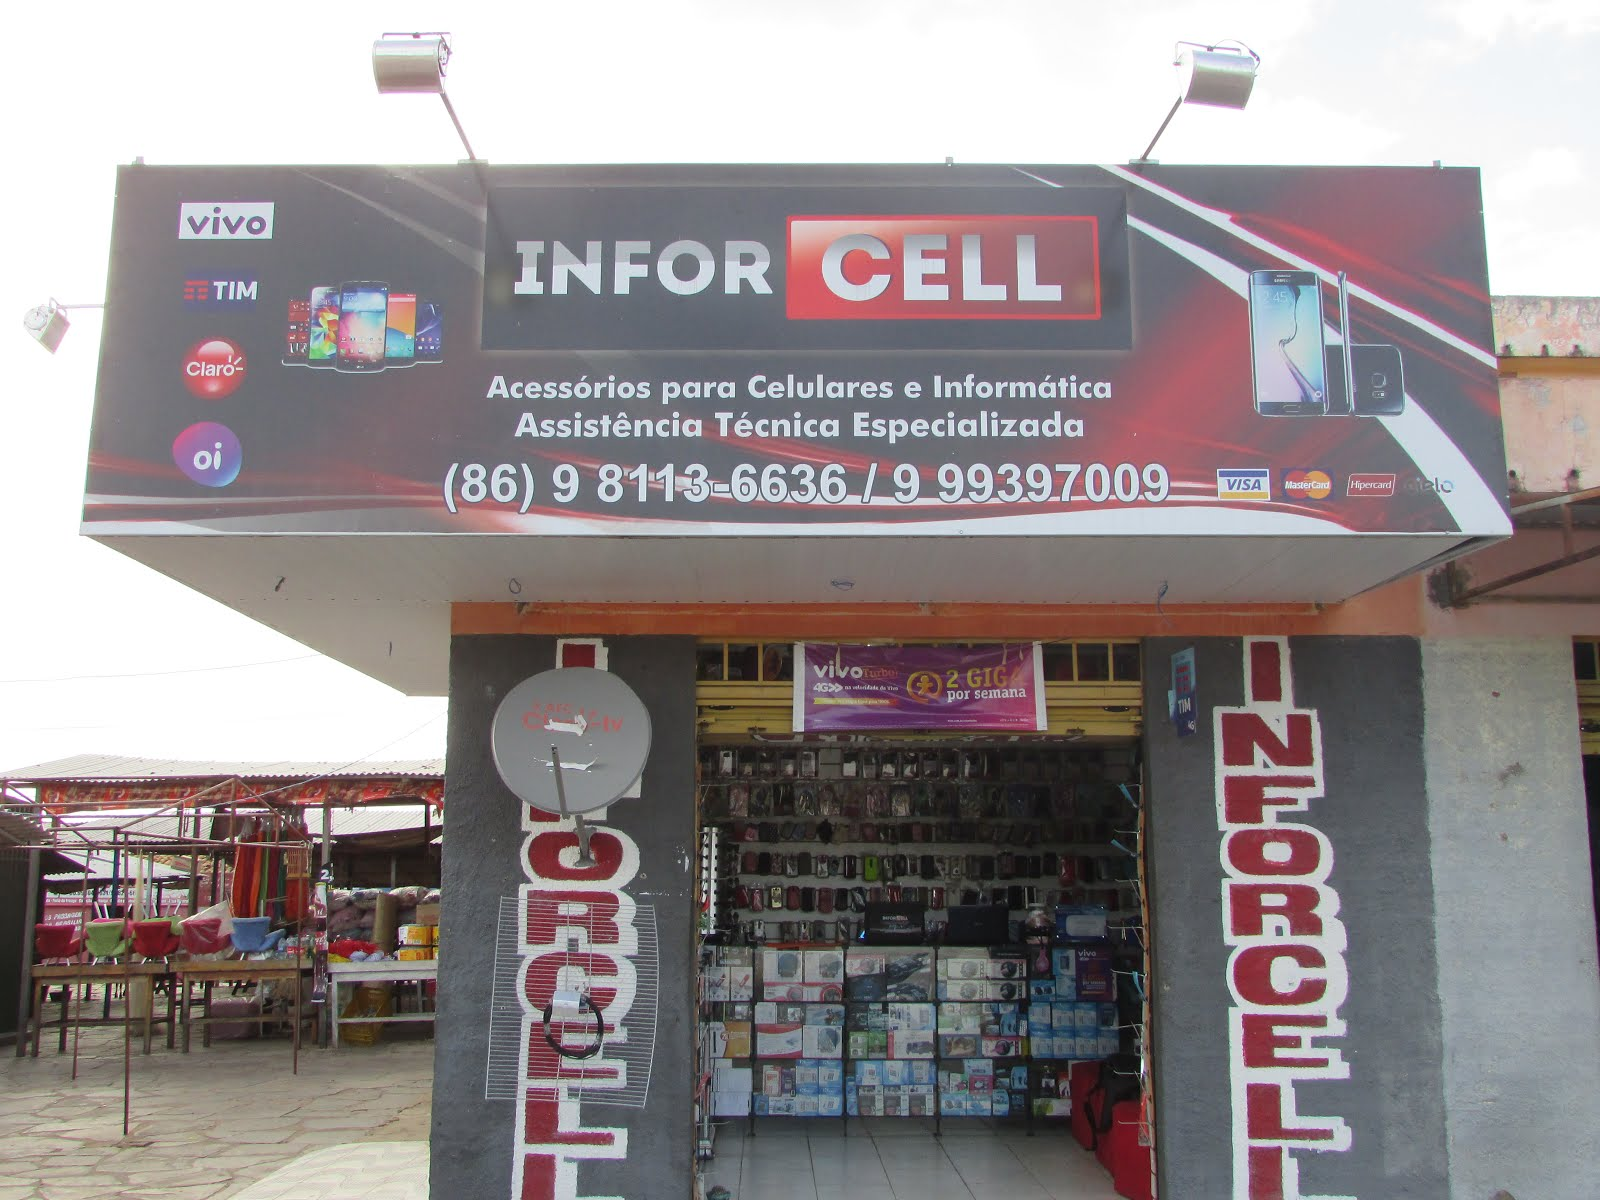 INFORCELL